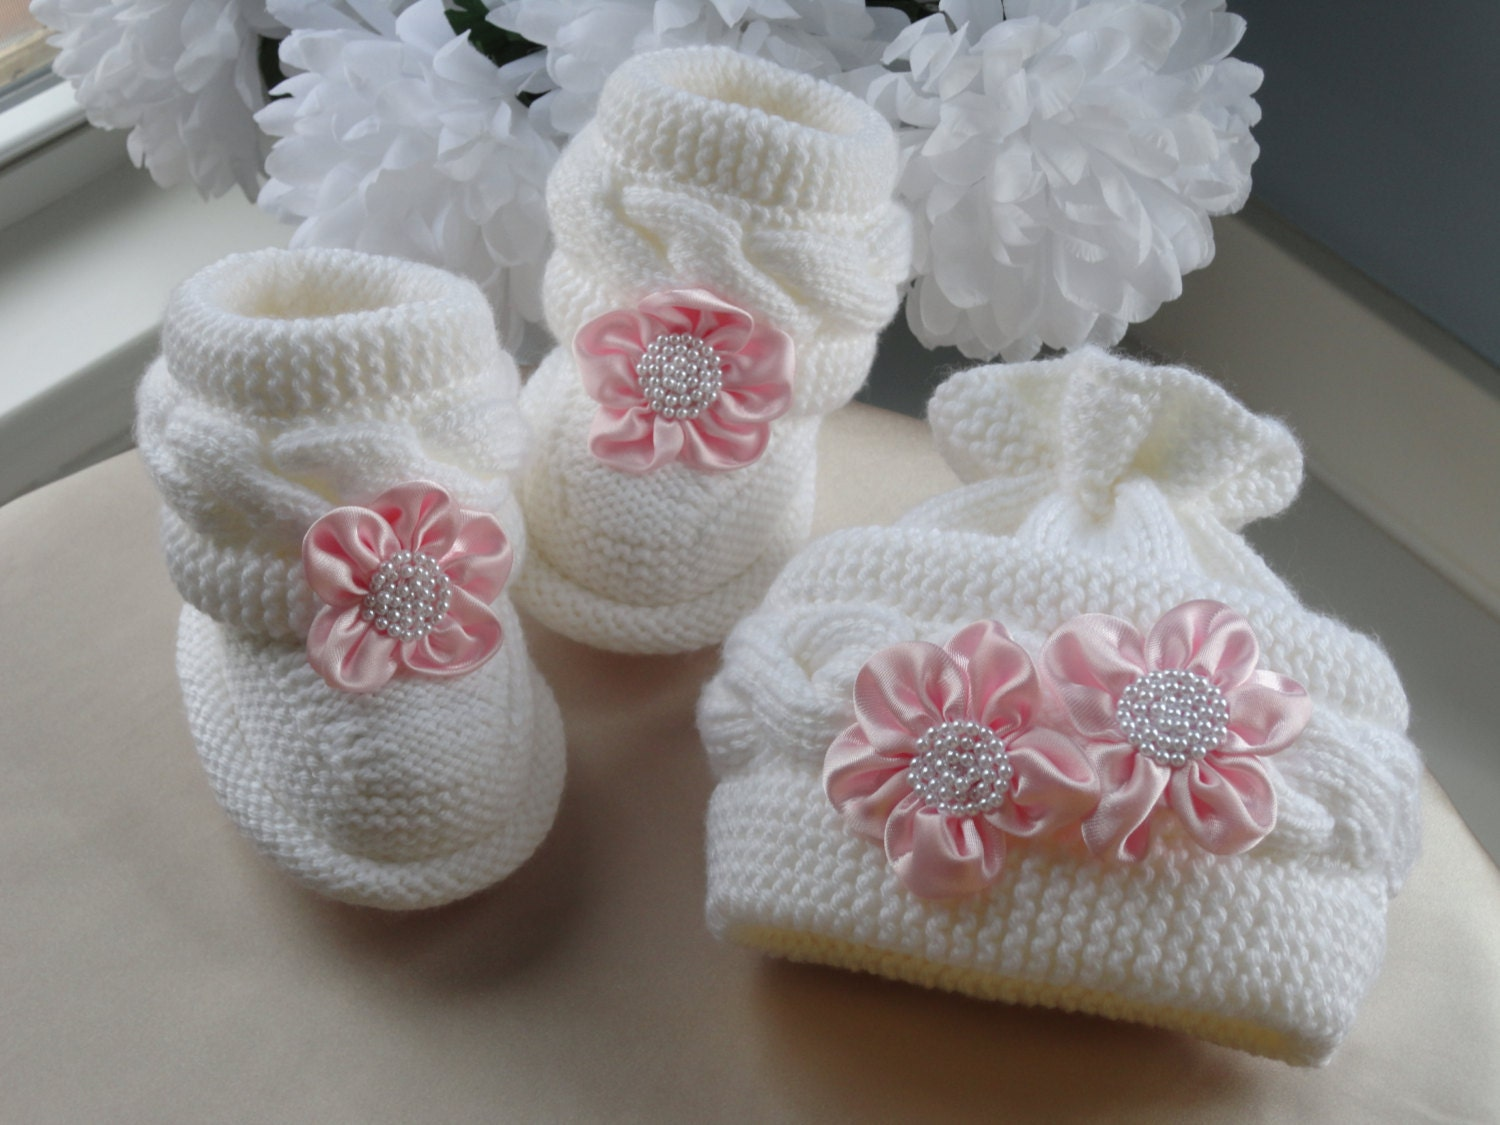 il 340x270480900837 fwb6 - winter collection 4 babies